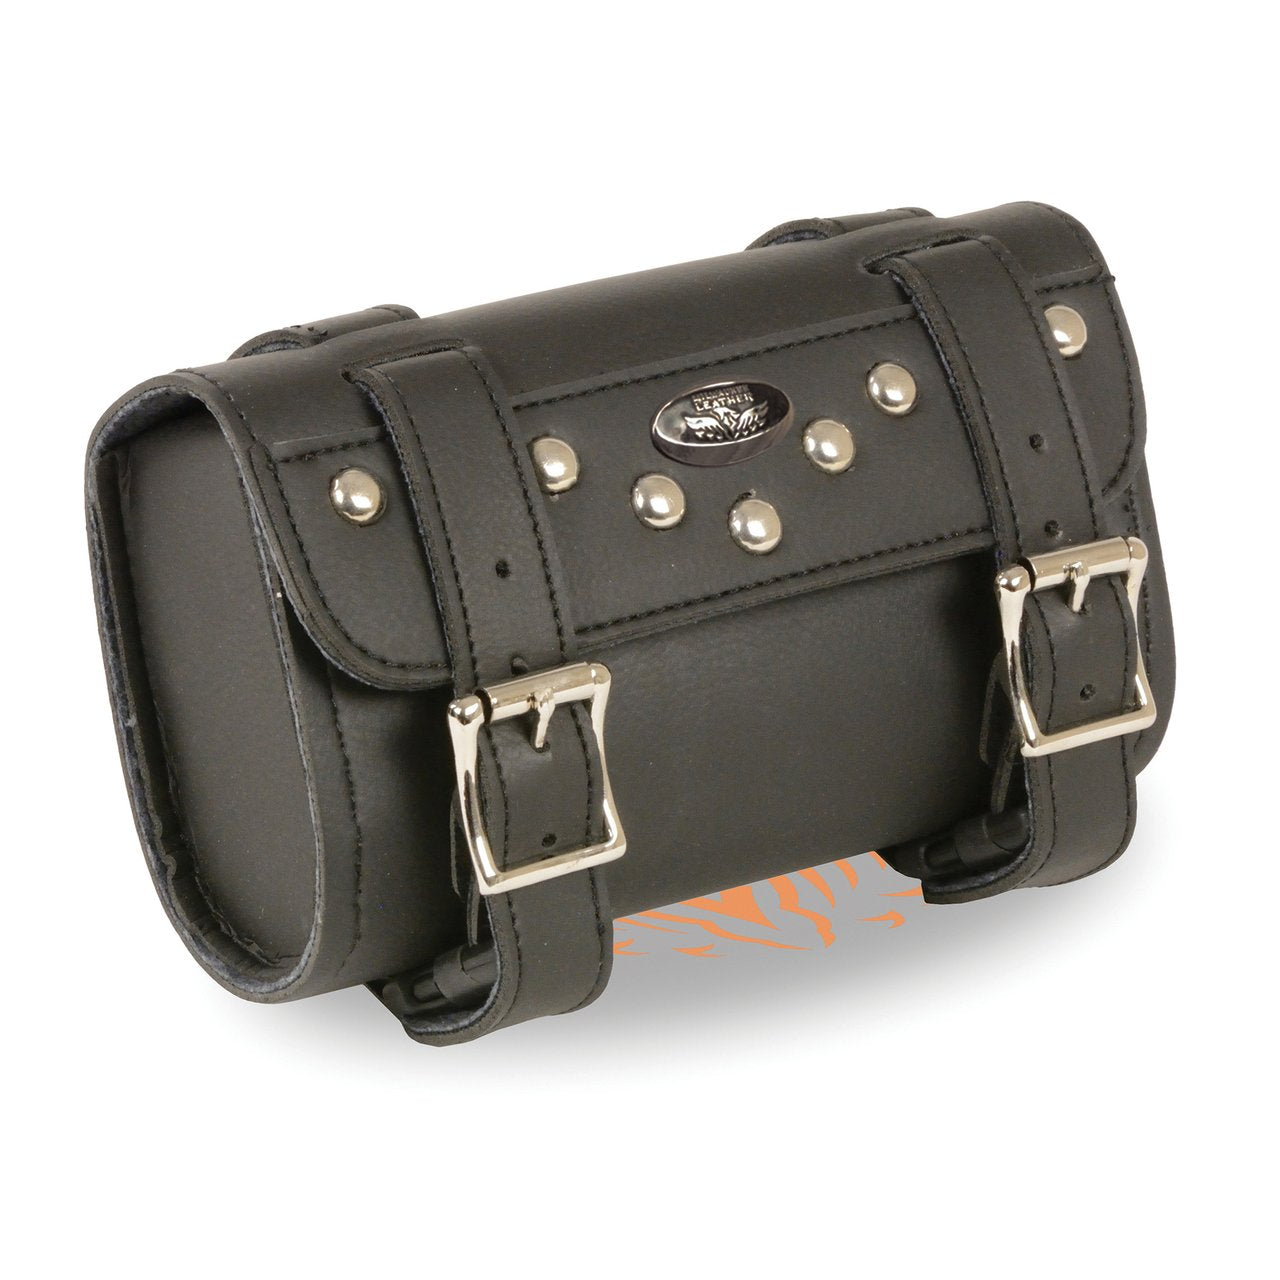 Small Two Buckle Studded PVC Tool Bag w/ Quick Release (8X4X3) - HighwayLeather